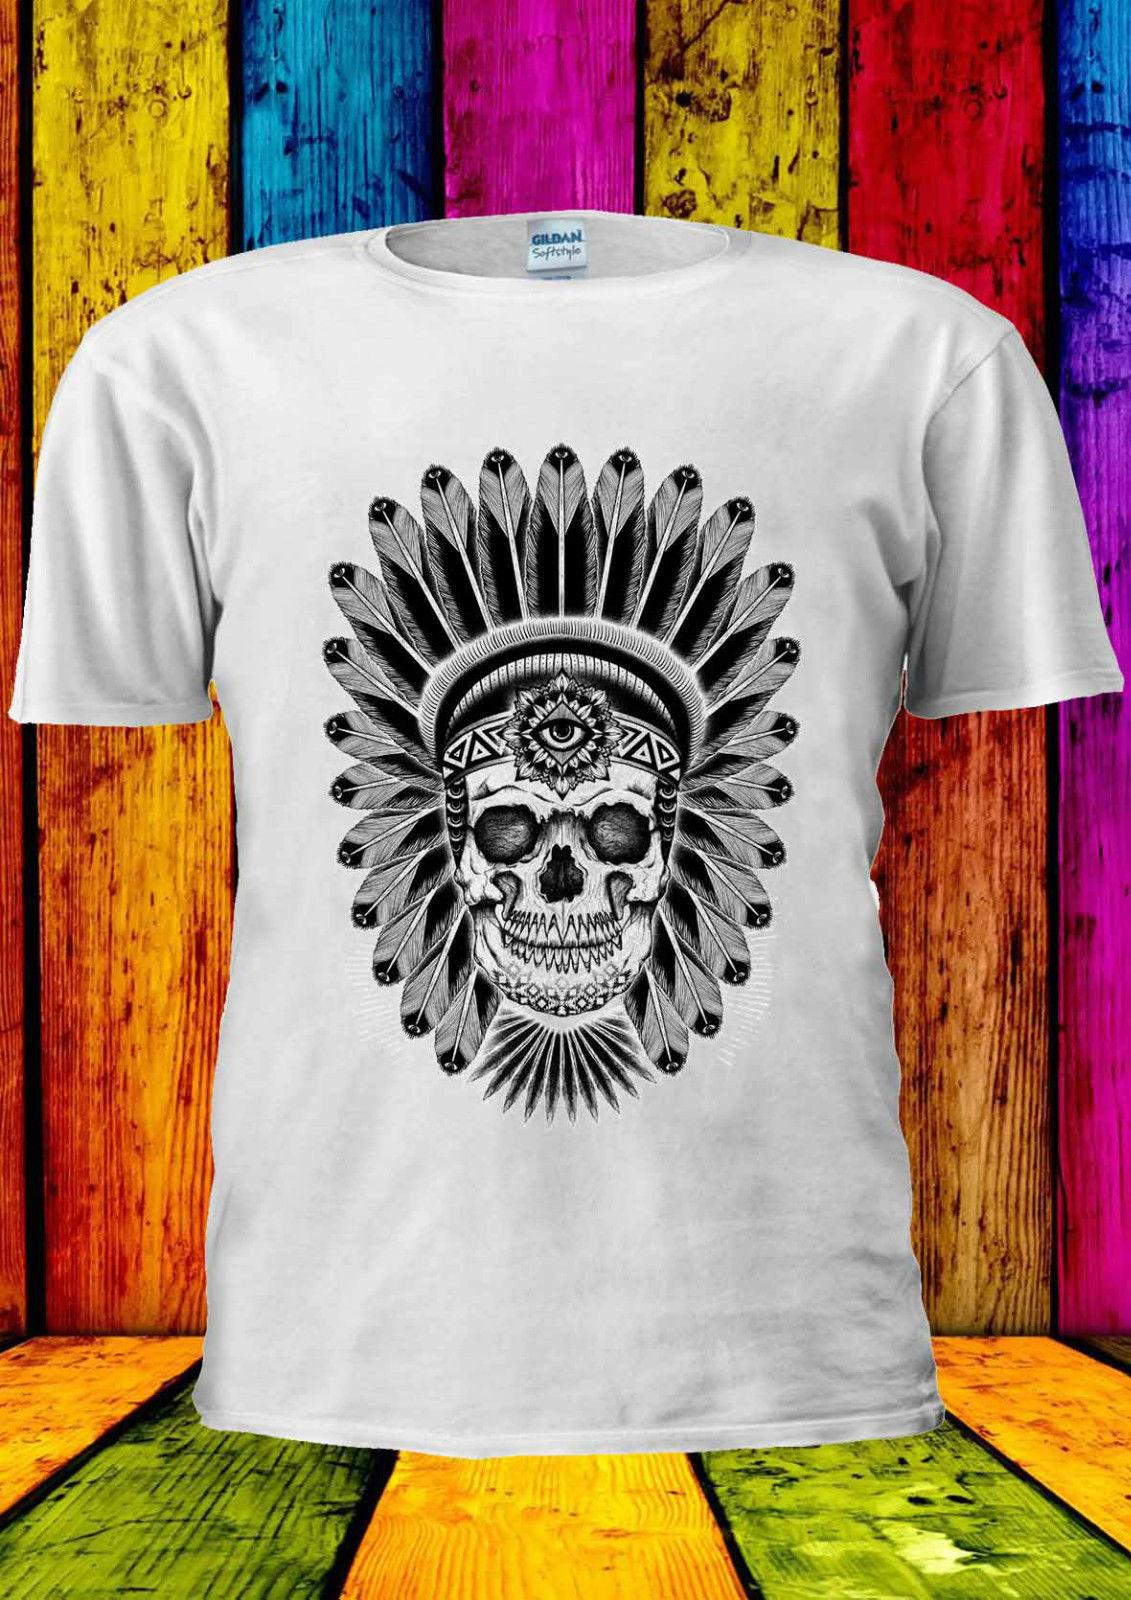 fafa0a51 Indian Skull Skeleton Cool Indie T Shirt Vest Tank Top Men Women Unisex  1136 Funny Casual Tshirt Top Online Funky T Shirts Buy T Shirt Design From  ...